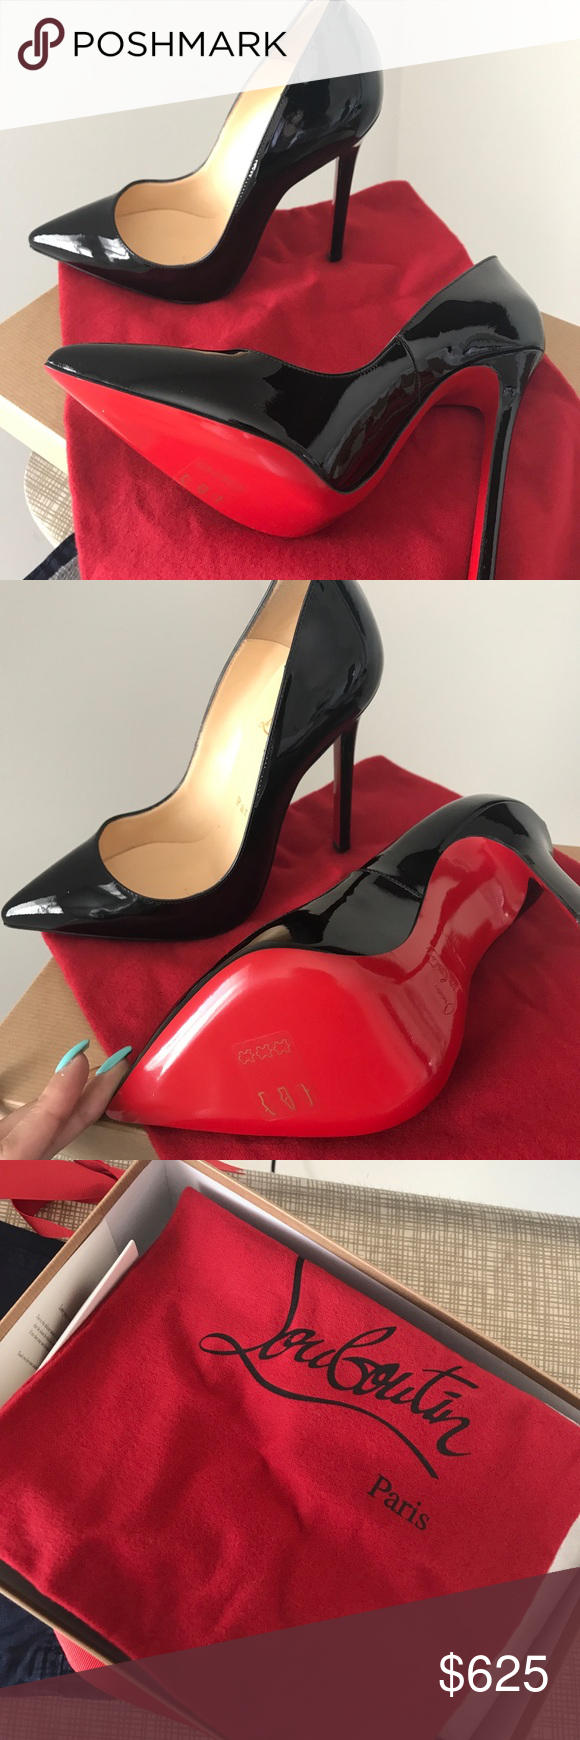 1384f5500d82 Red Bottoms Brand New In Box Never Used Christian Louboutin Shoes Heels